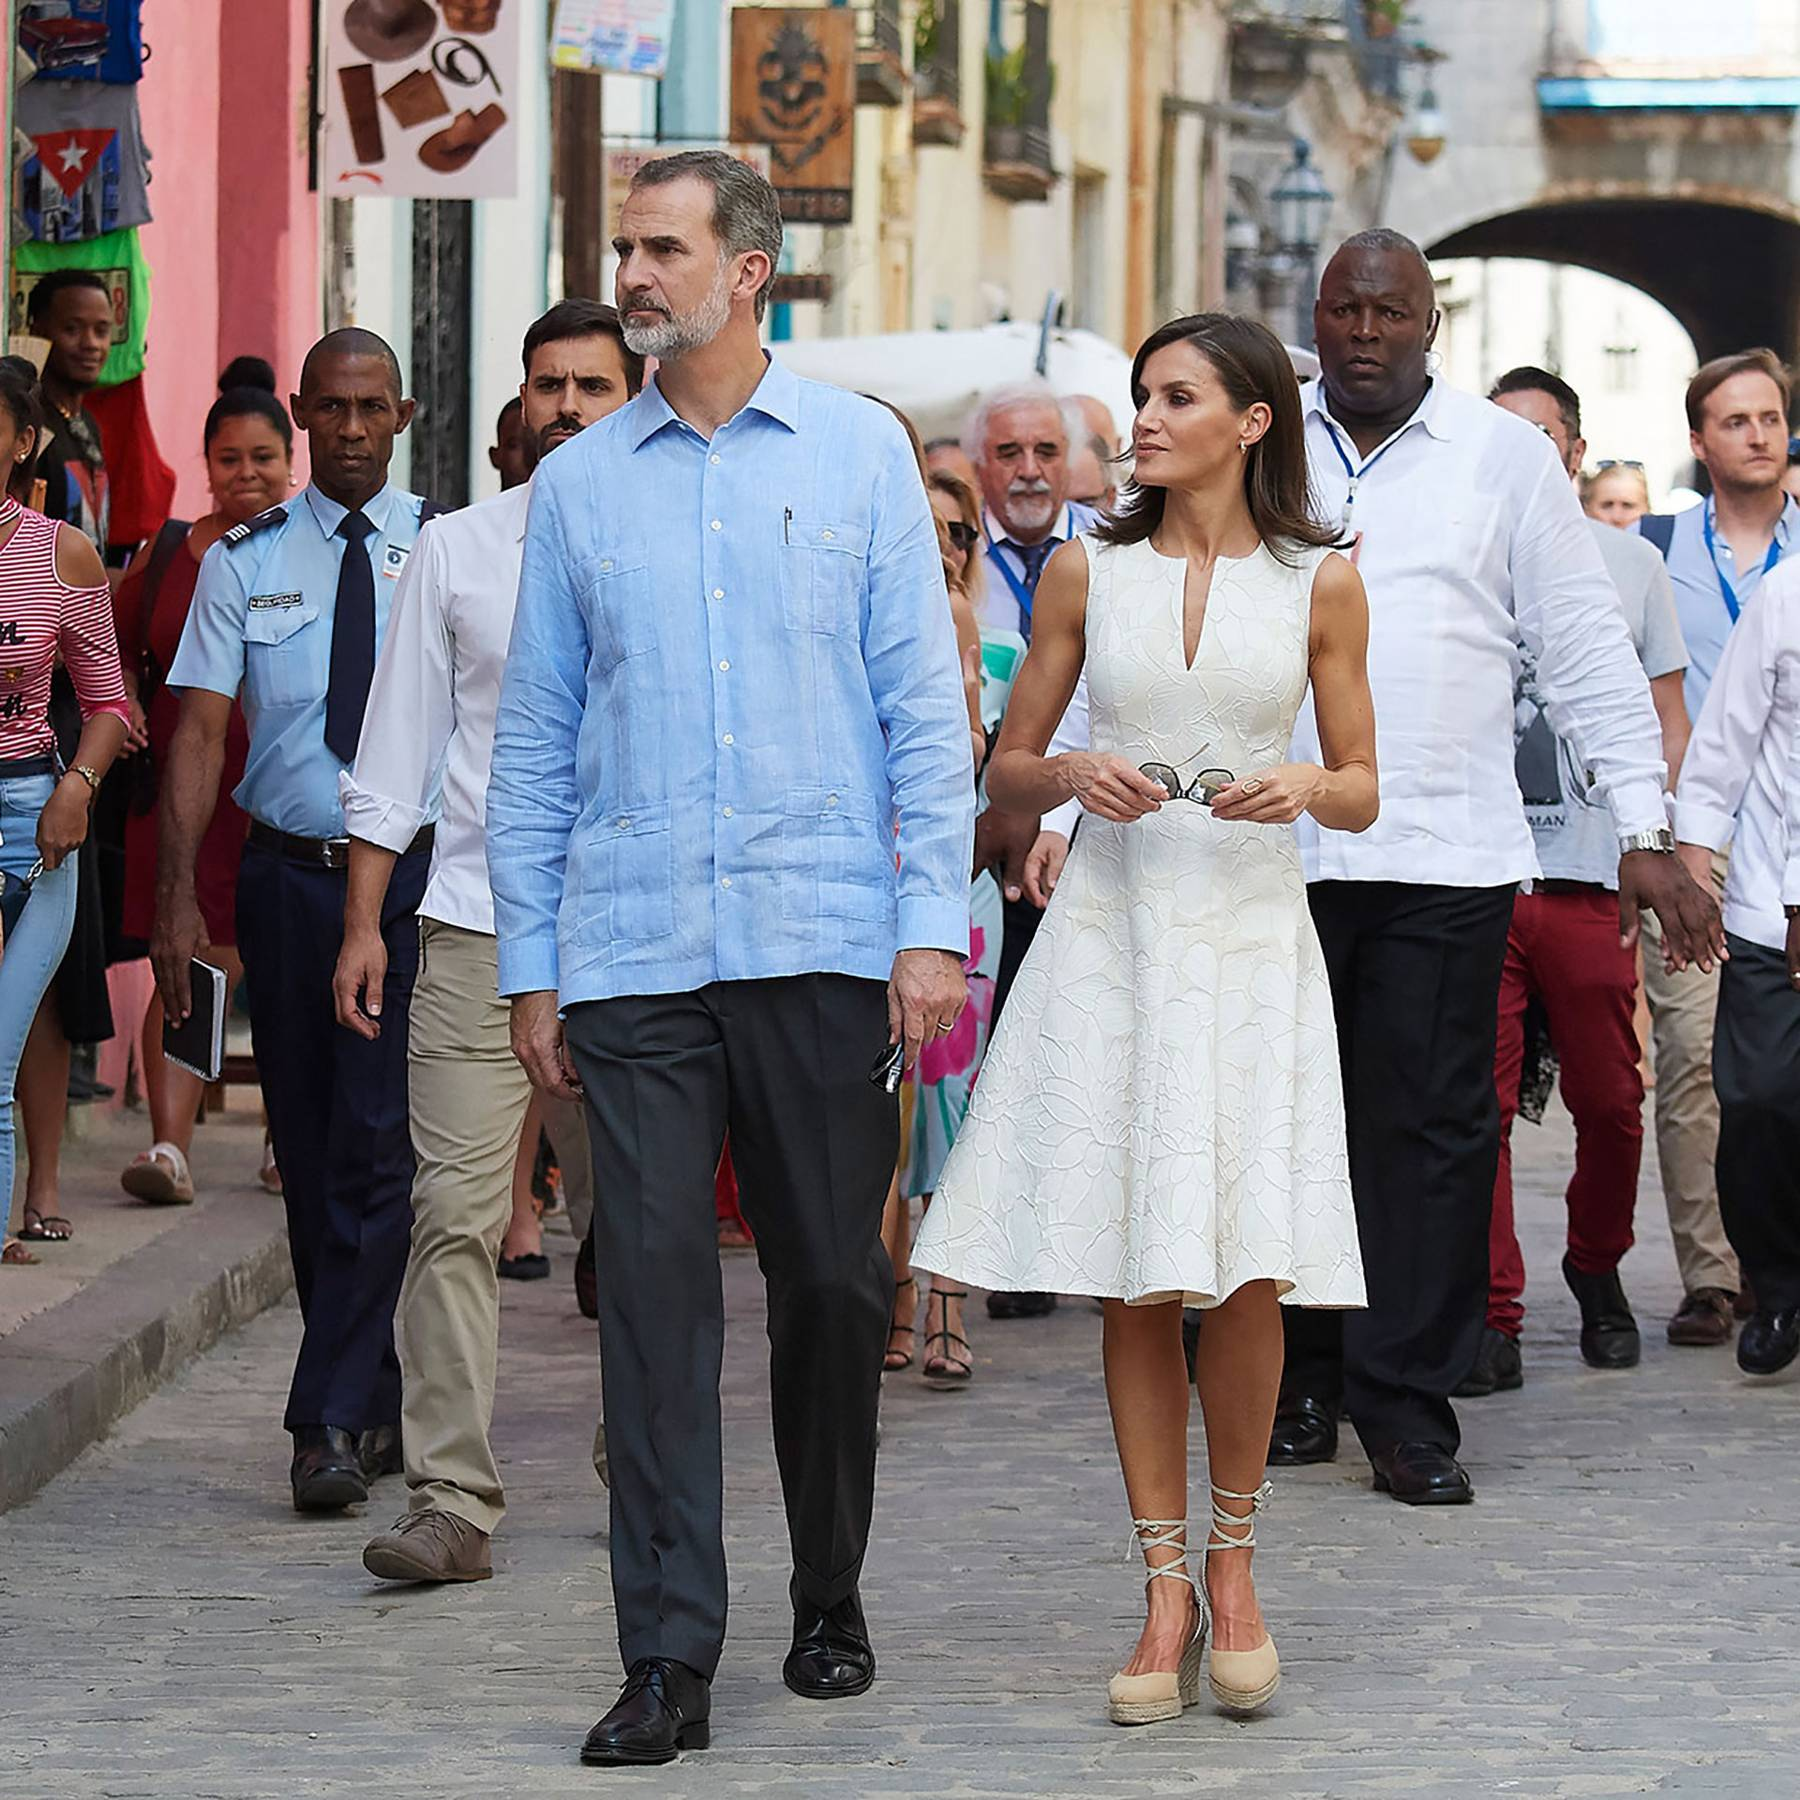 Spanish royals are first to visit Cuba on official state visit in 500 years